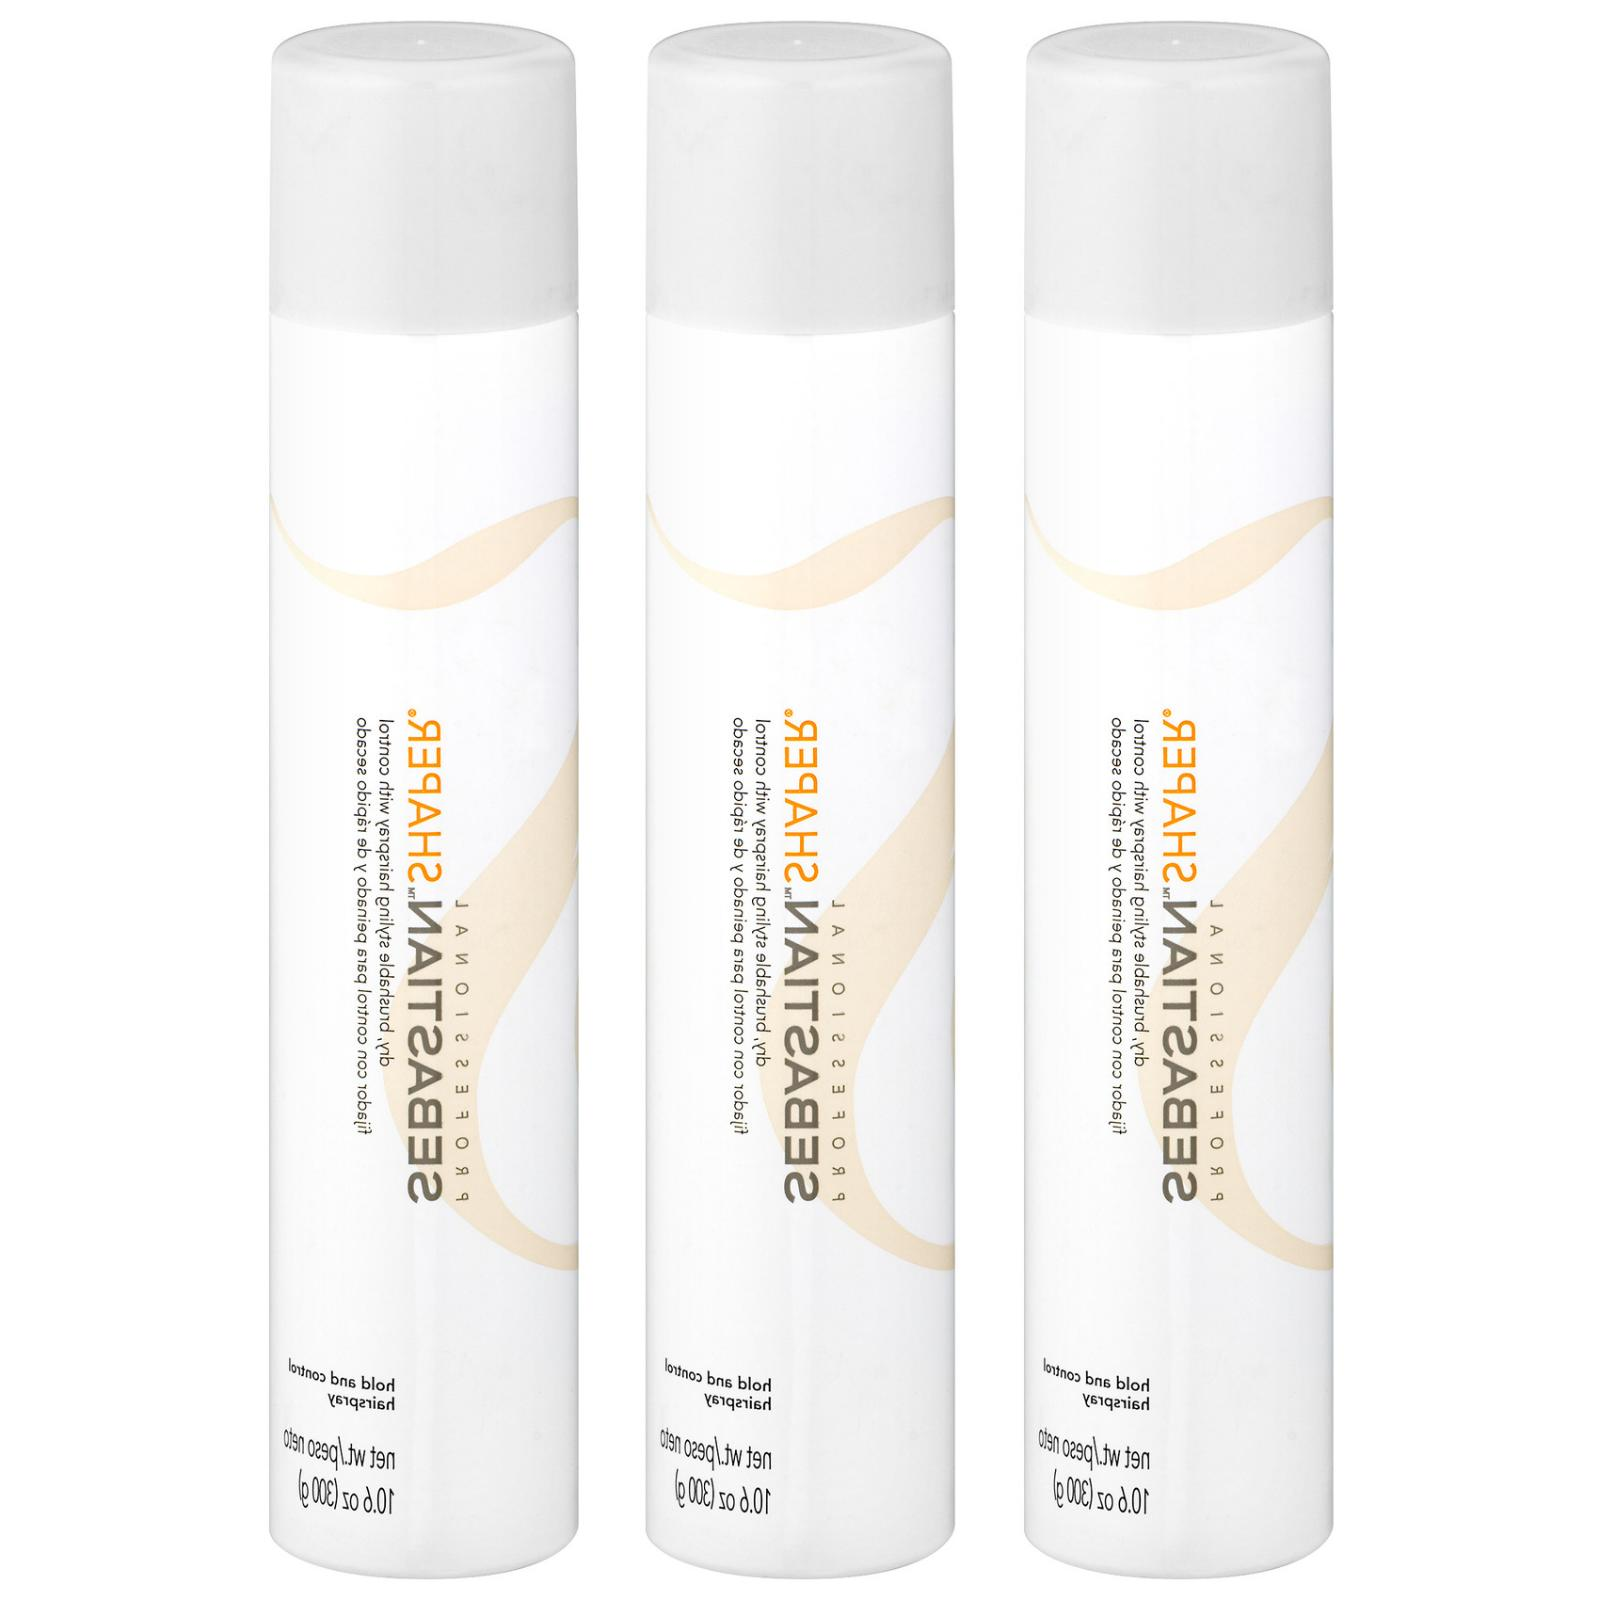 over half off retail professional shaper hairspray